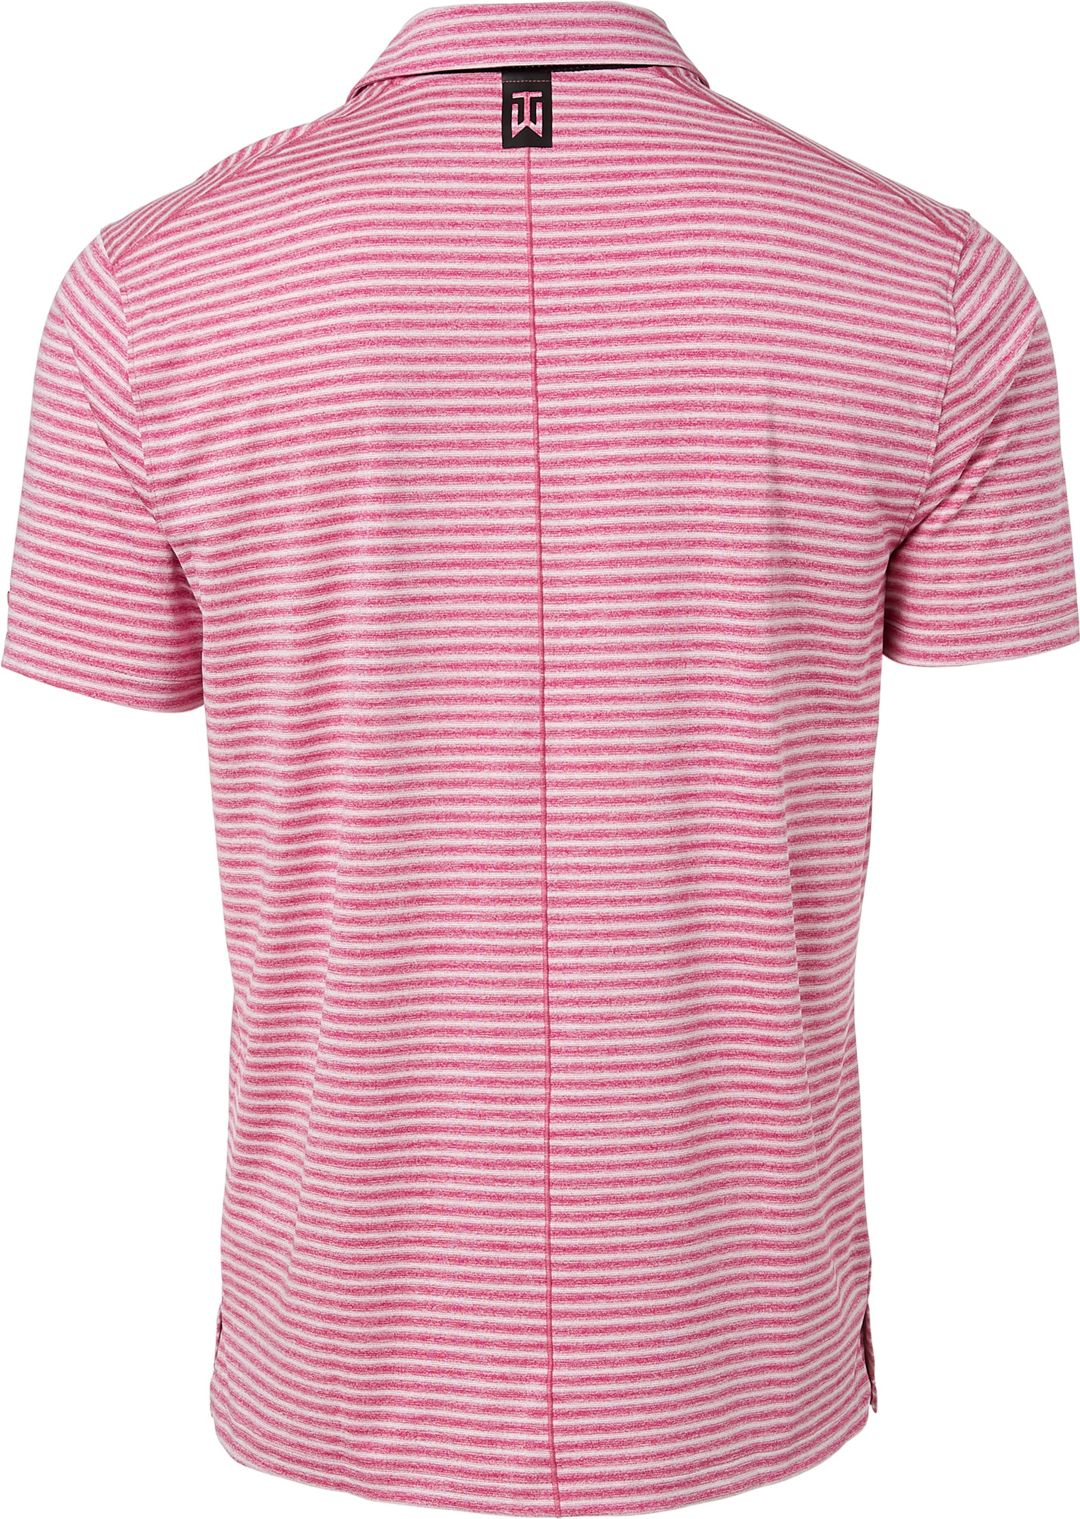 c5aa59ae4 Nike Men's Tiger Woods Vapor Stripe Golf Polo | DICK'S Sporting Goods